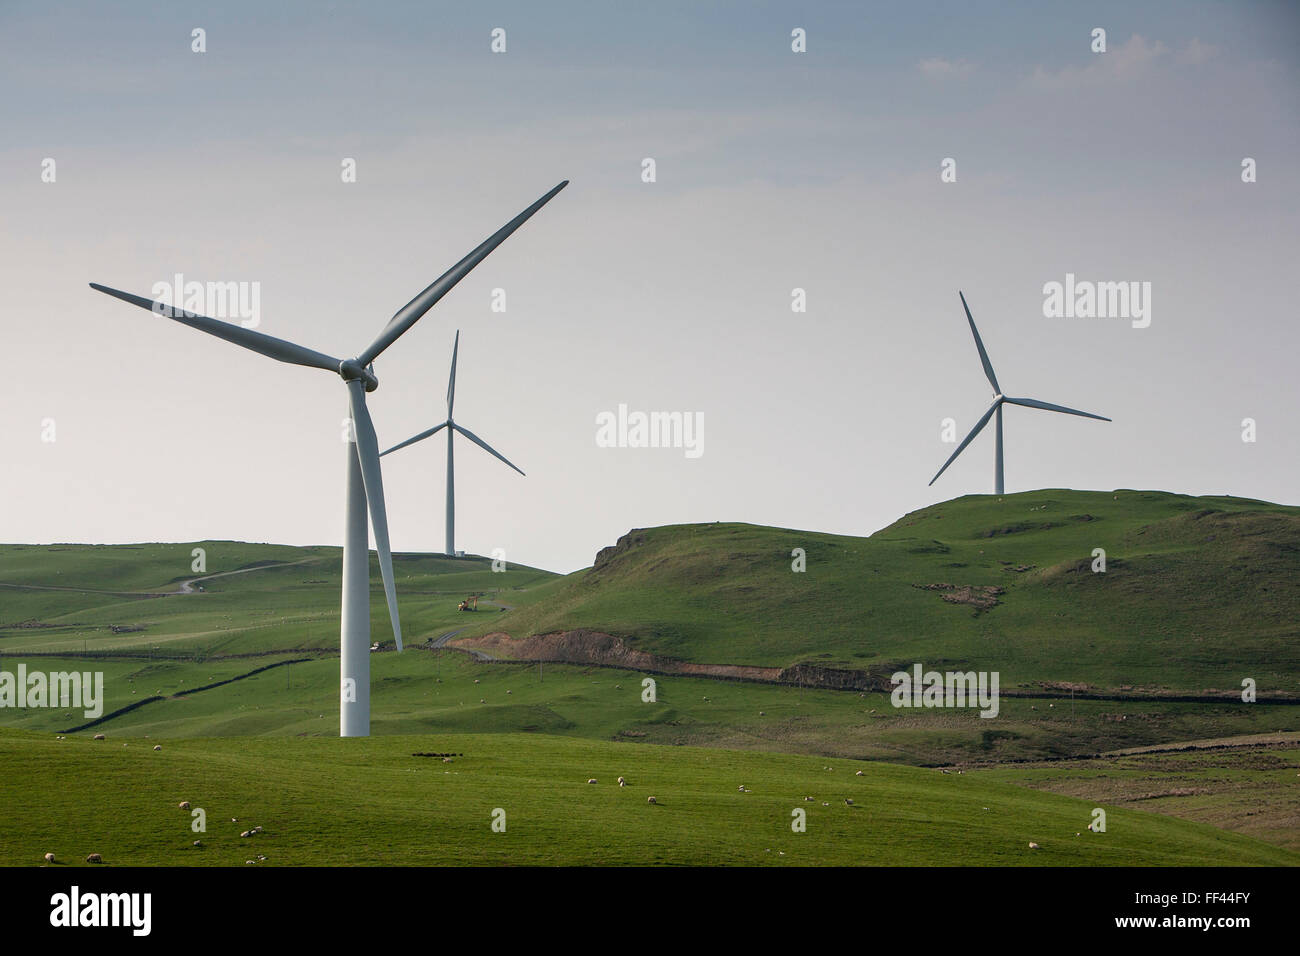 Hadyard hill wind farm in South Ayrshire has 52 wind turbines. It generates over 120MW of zero carbon electricity - Stock Image